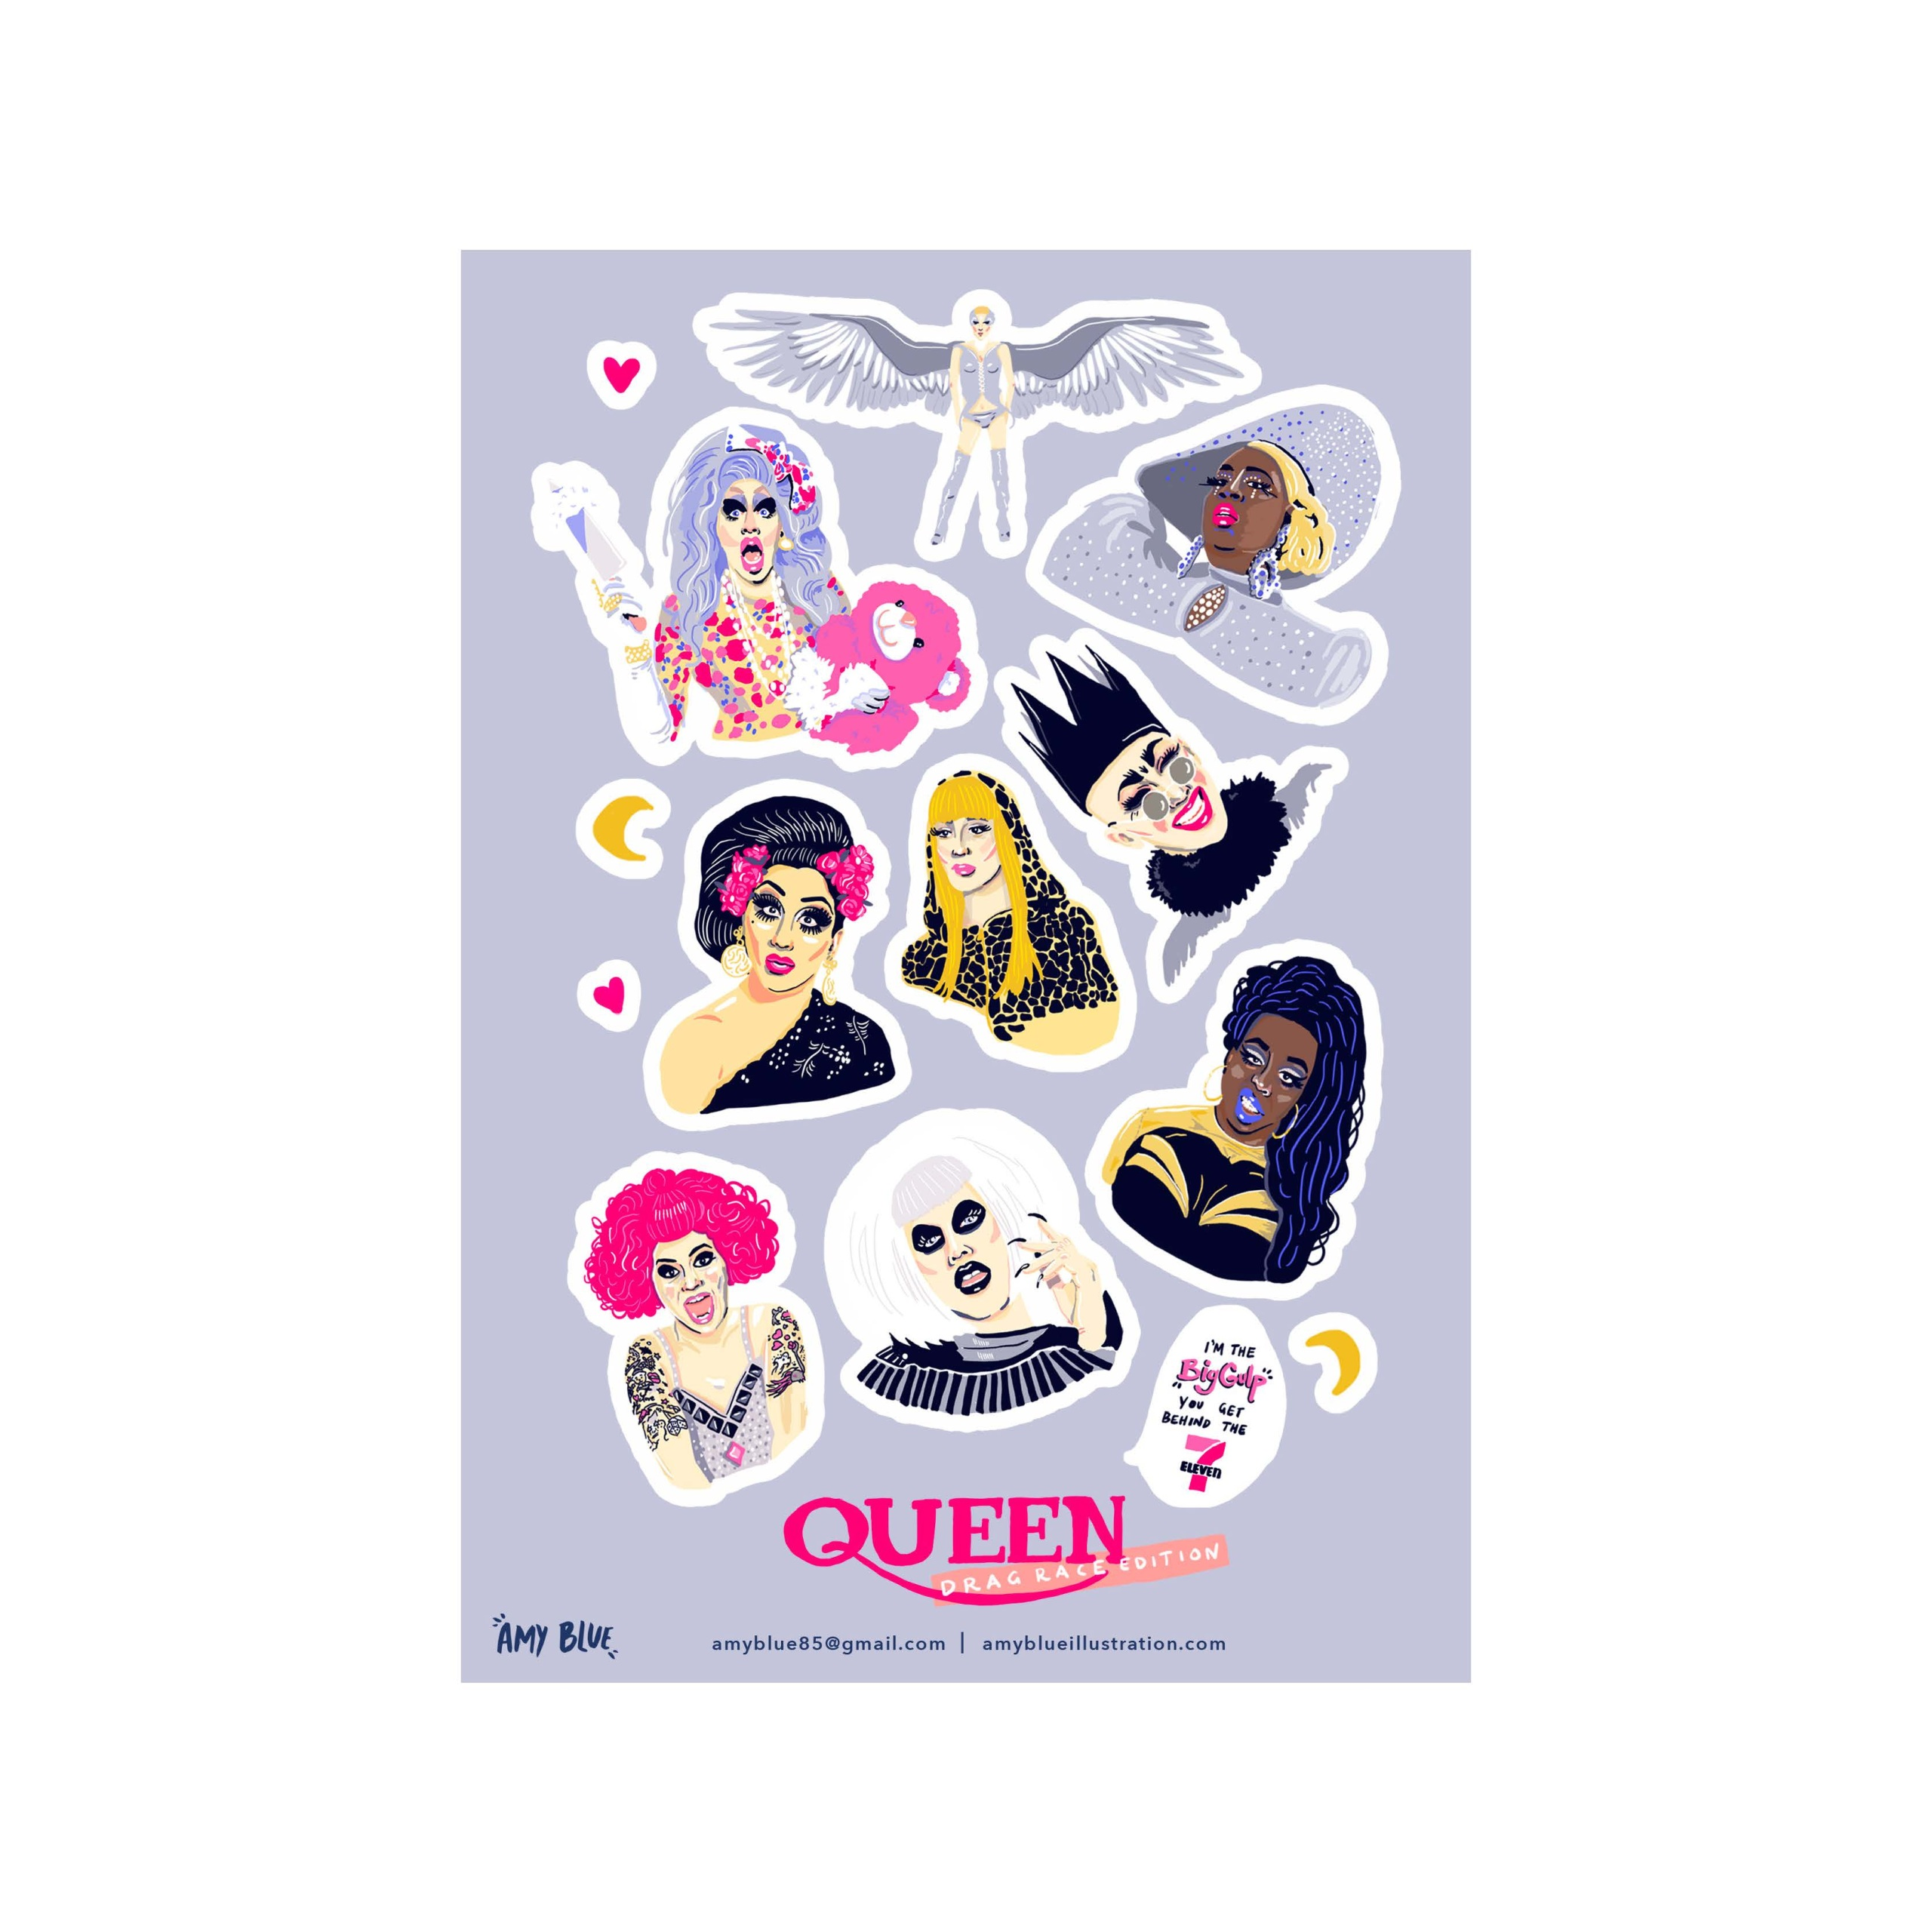 Rupaul S Drag Race Sticker Sheet Amy Blue Illustration